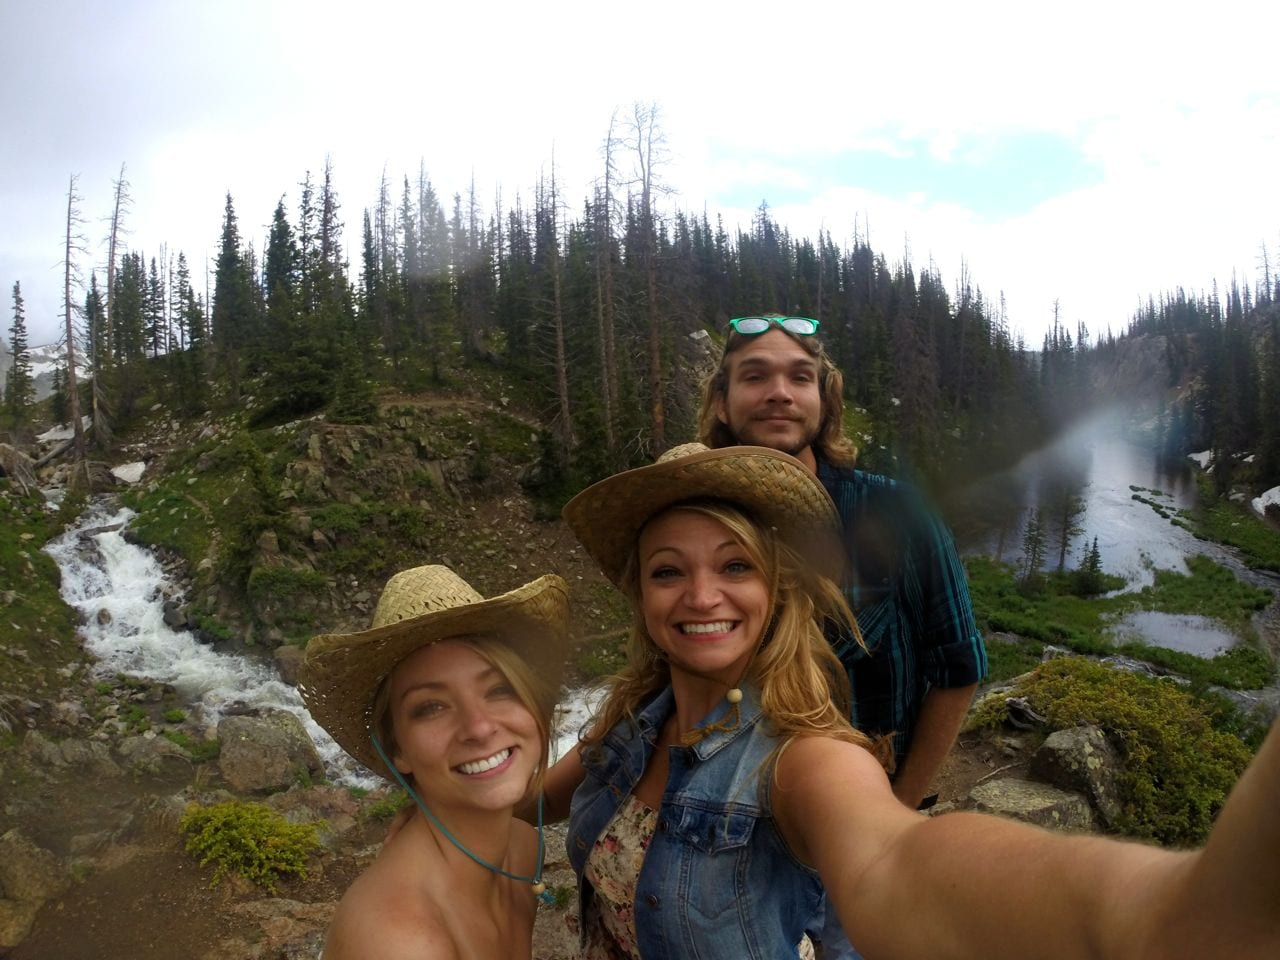 Snow in July?!